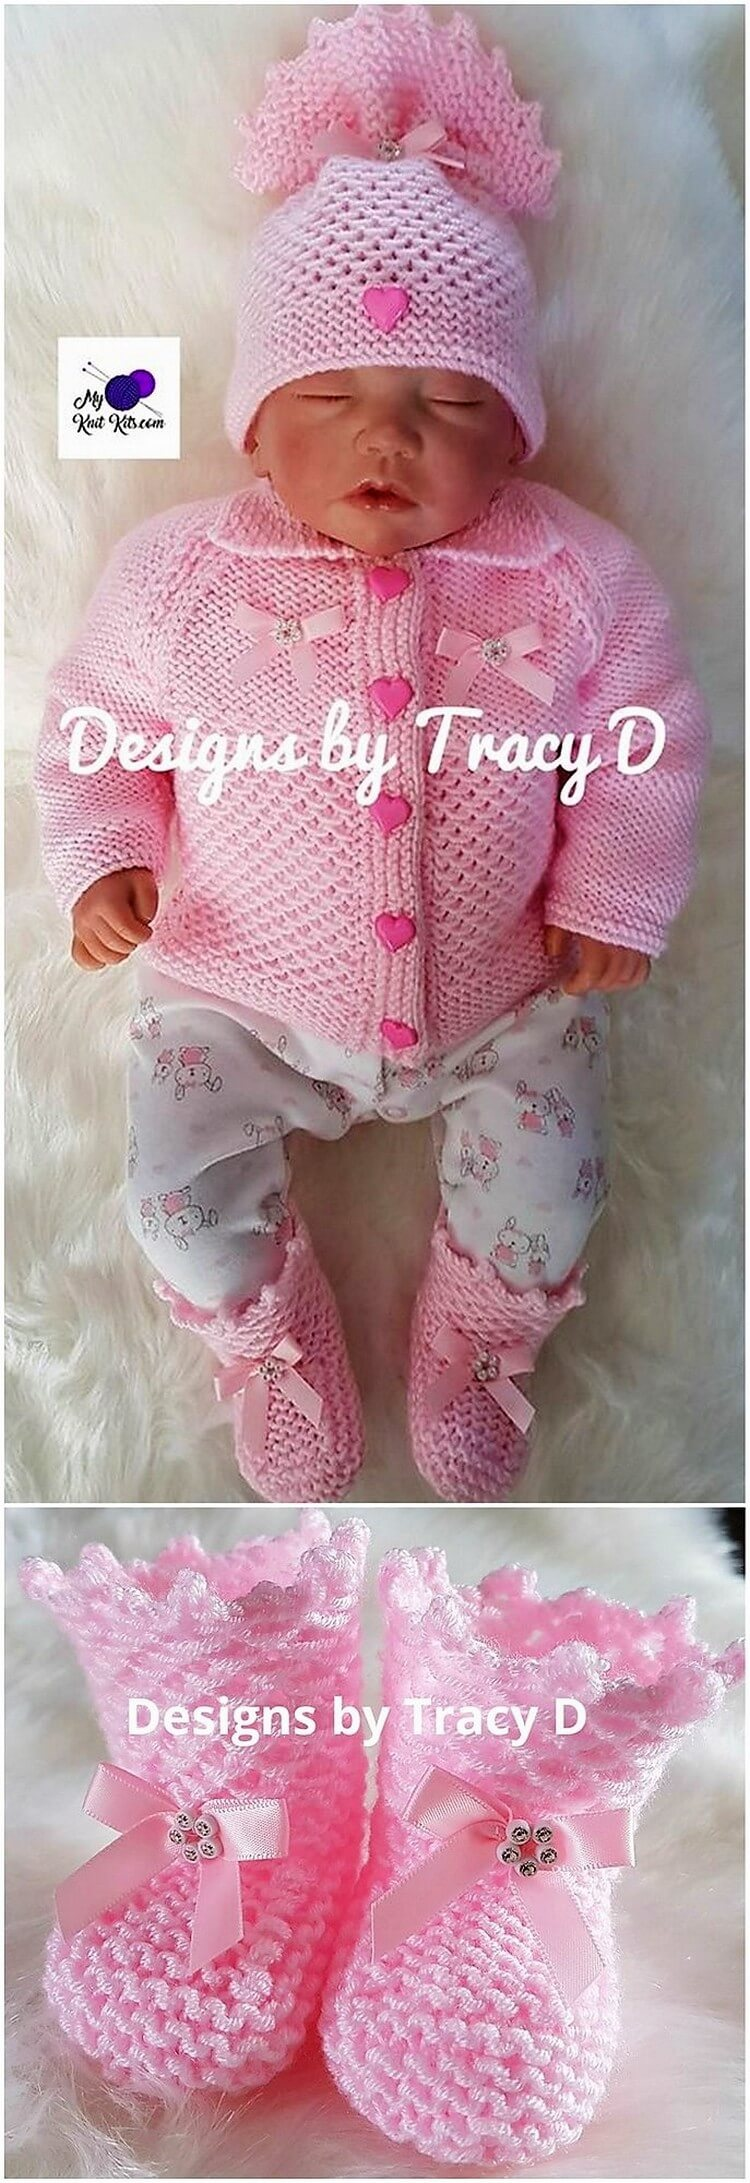 Crochet Creation for Childern